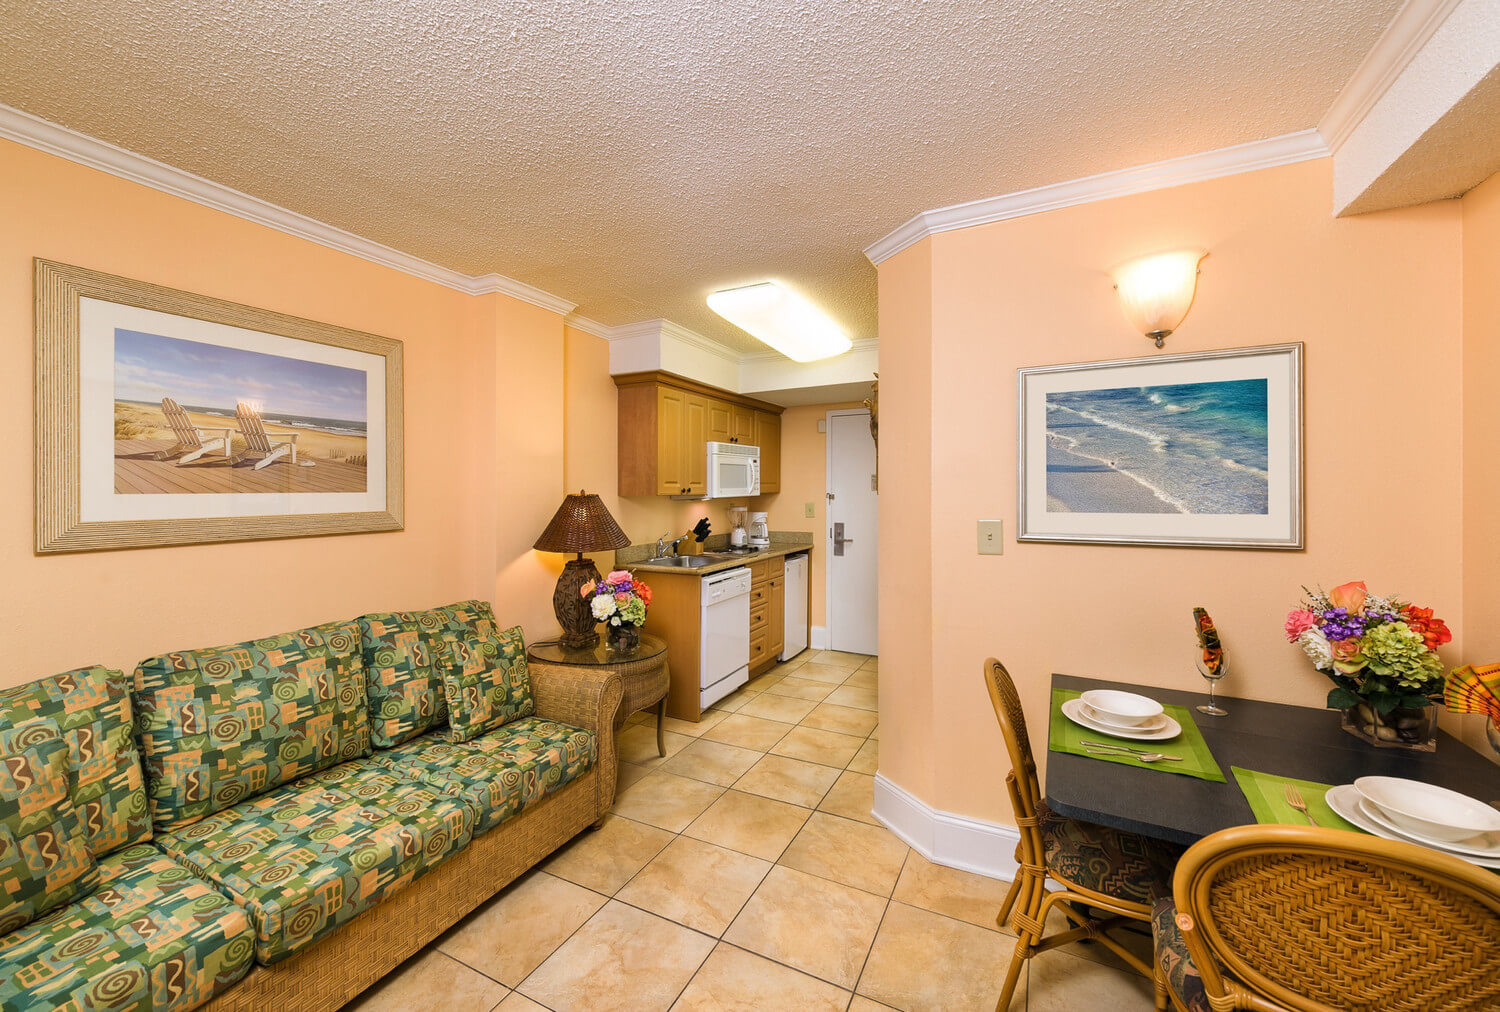 One Bedroom Oceanfront Villa. Myrtle Beach Oceanfront Hotels   Westgate Myrtle Beach Villas